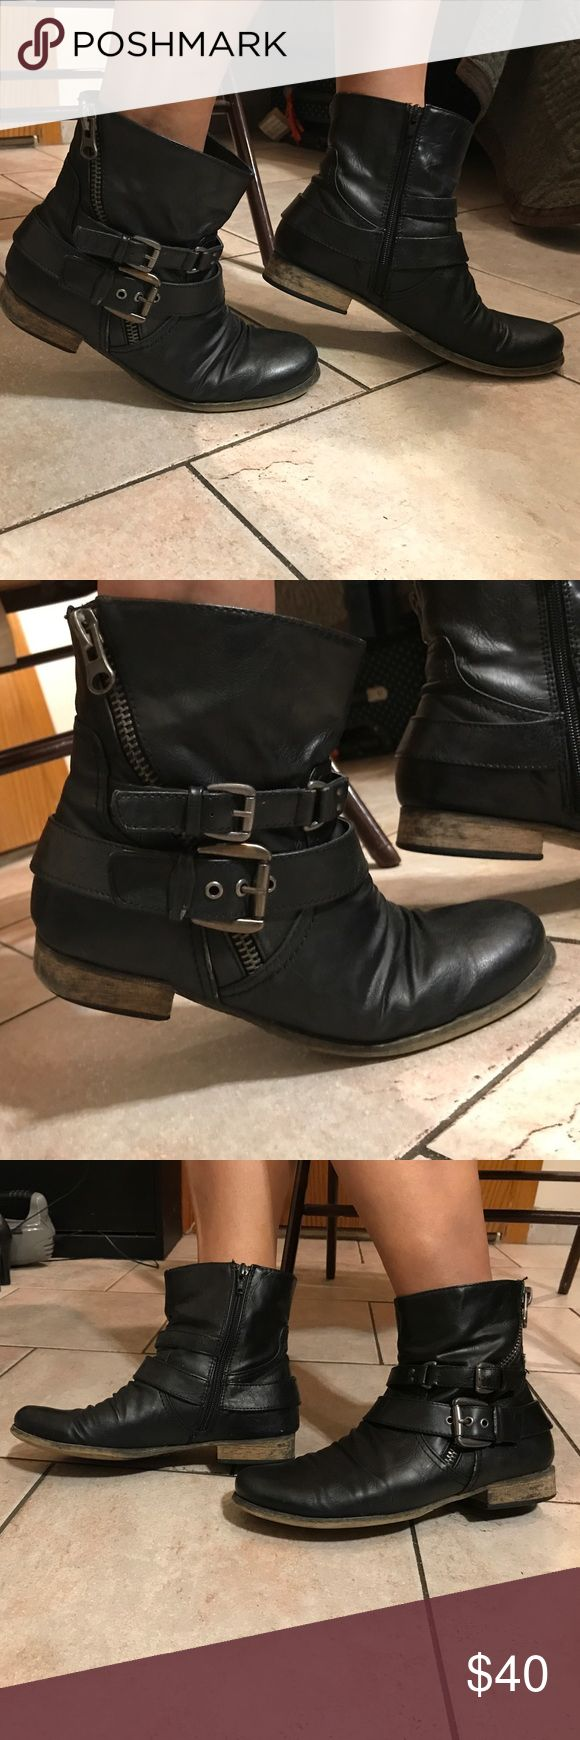 Carlos Santana Boots Good condition. Heels a little worn. Carlos Santana Shoes Ankle Boots & Booties